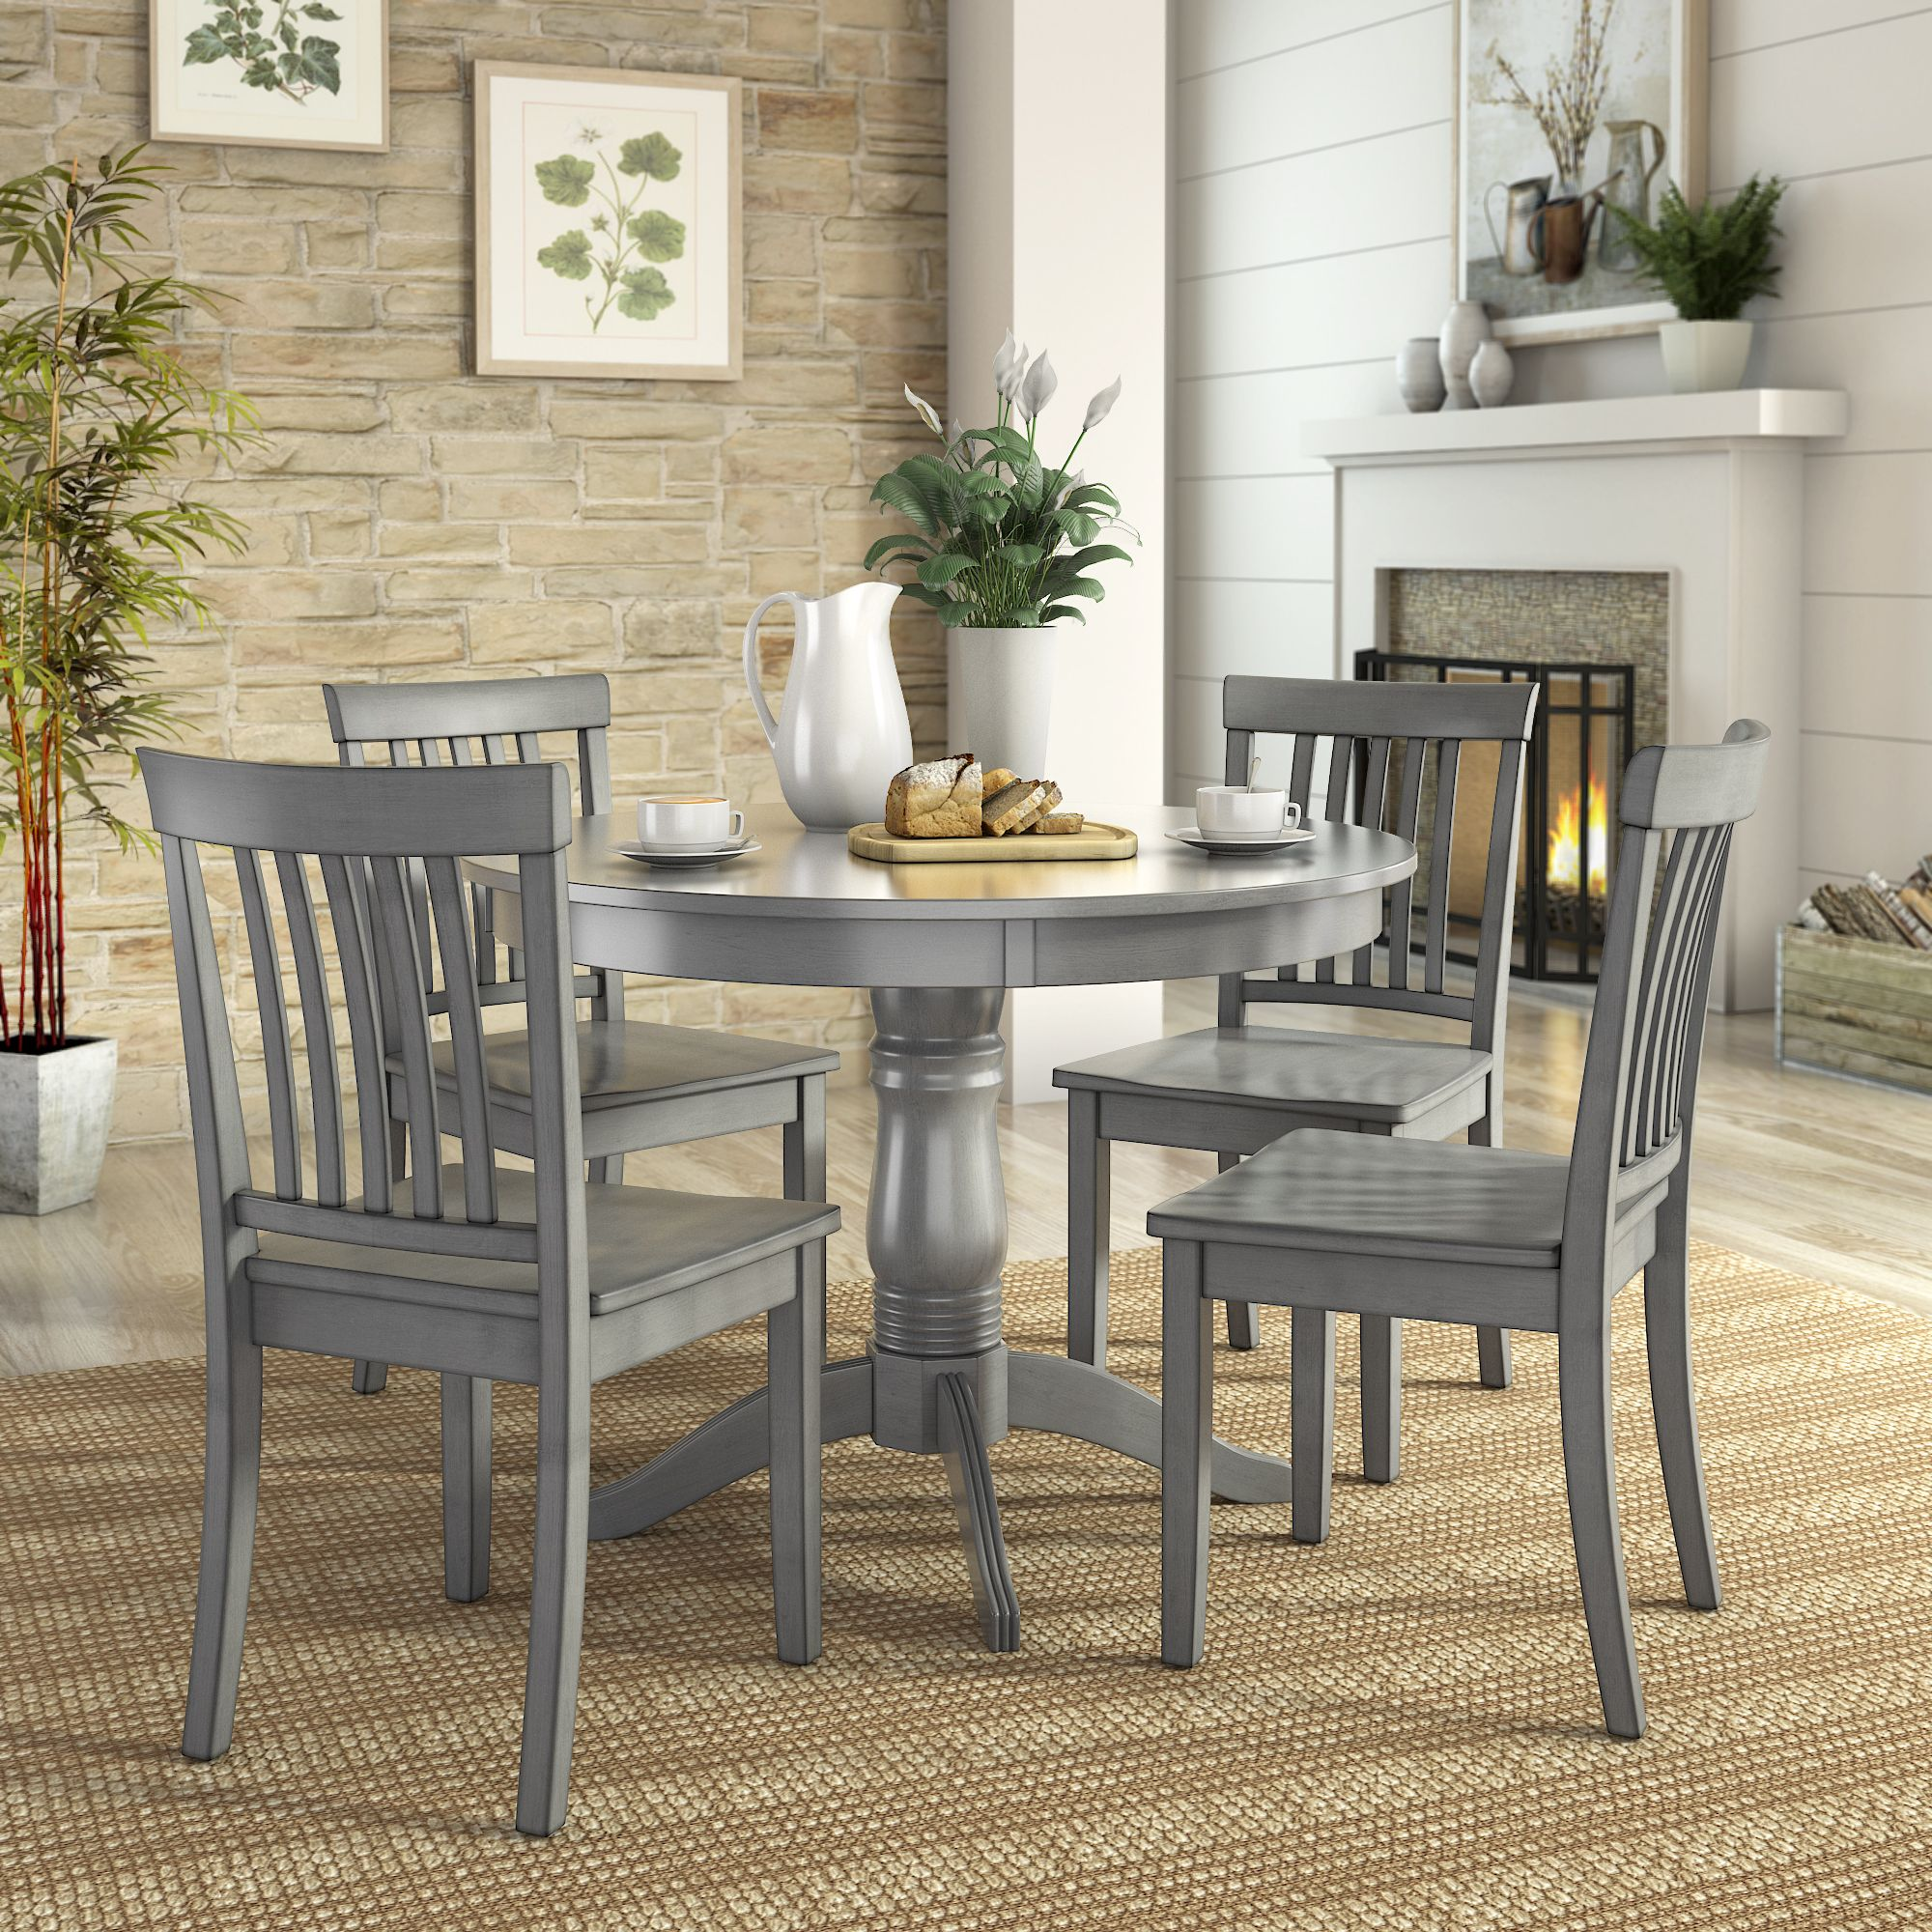 Home Round Dining Table Sets Dining Room Sets Small Kitchen